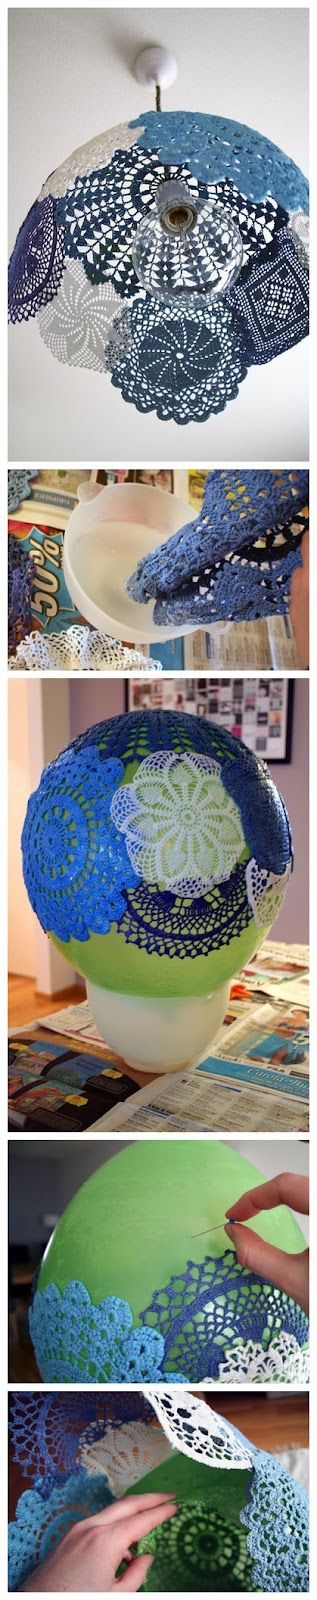 :: Meet Me At Mikes : Good Stuff For Nice People: :: The One About Making Dyed Doily Lampshades